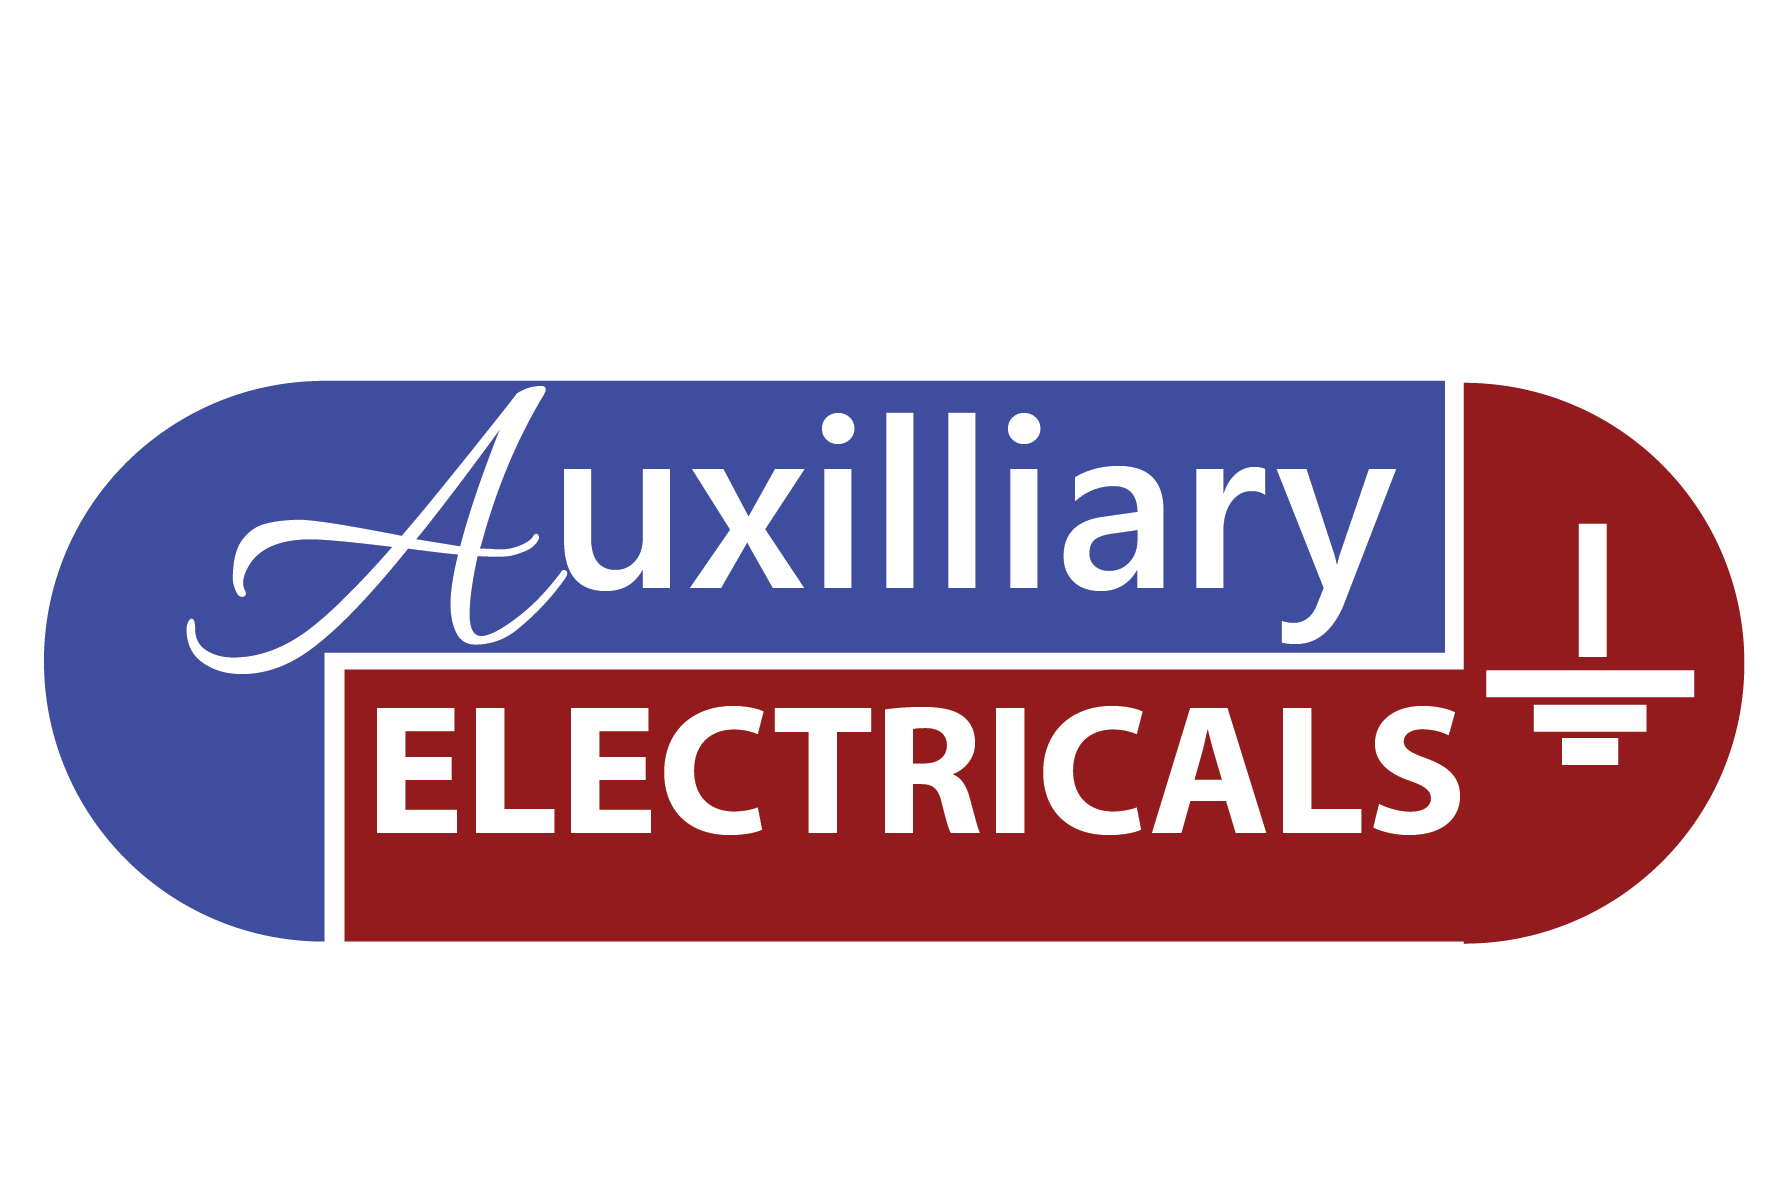 Auxilliaryelectricals Coupons & Promo codes